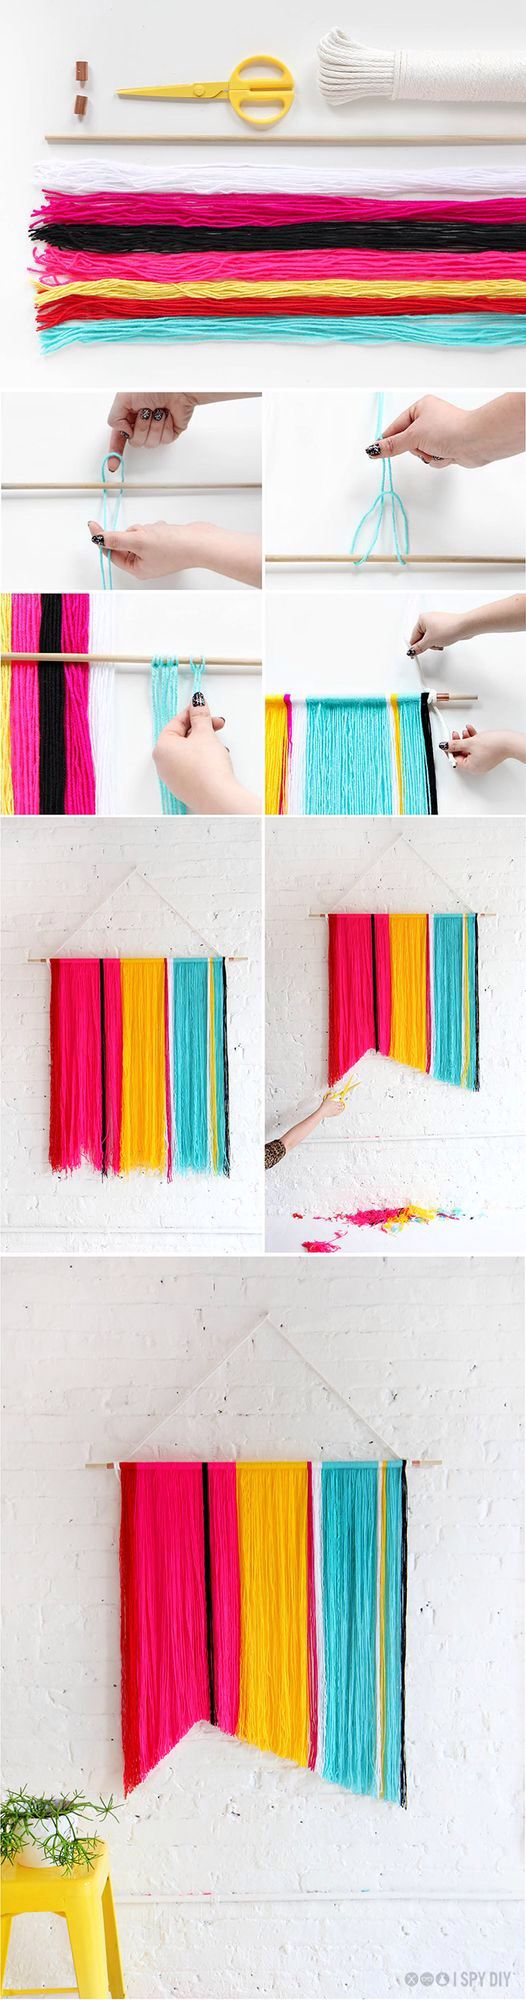 Colors: white and alternating either pink or blue